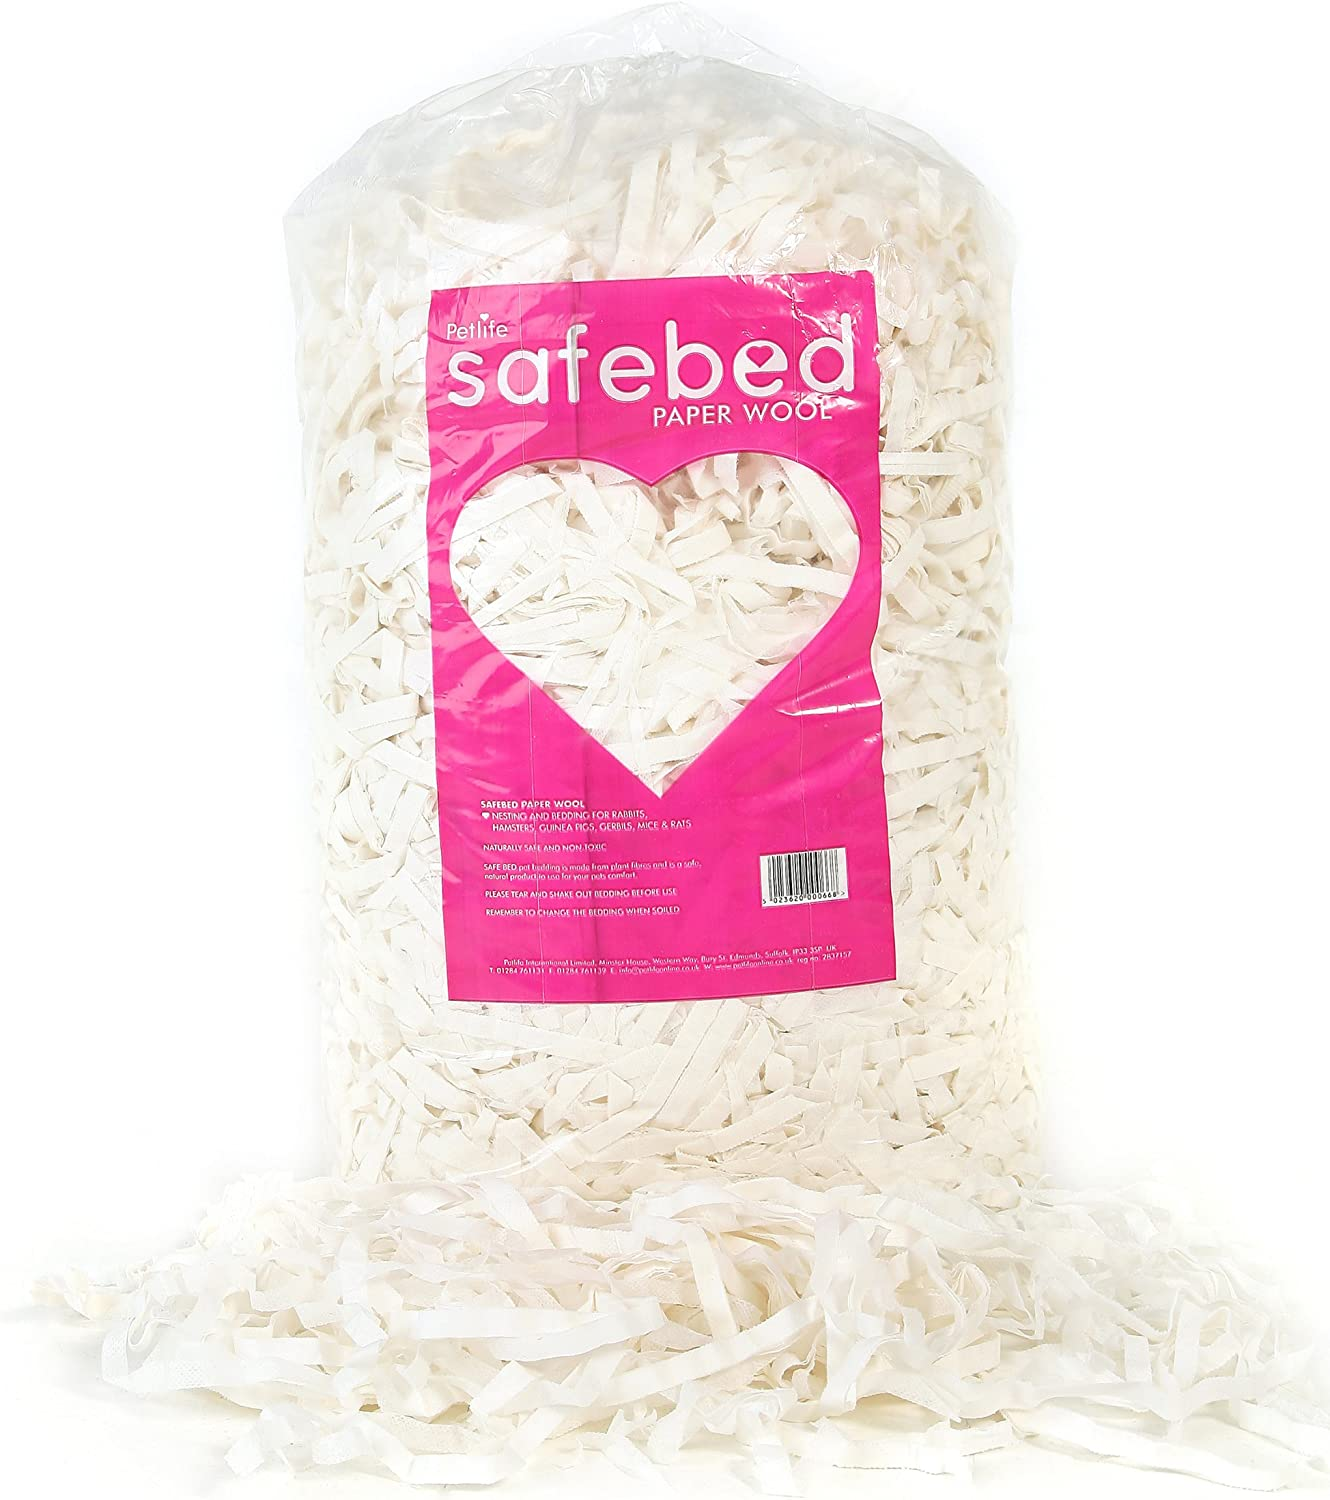 Safebed Paper Wool Petlife Small Animal for Rabbit Fixed price sale OFFicial site Bedding Kg 2